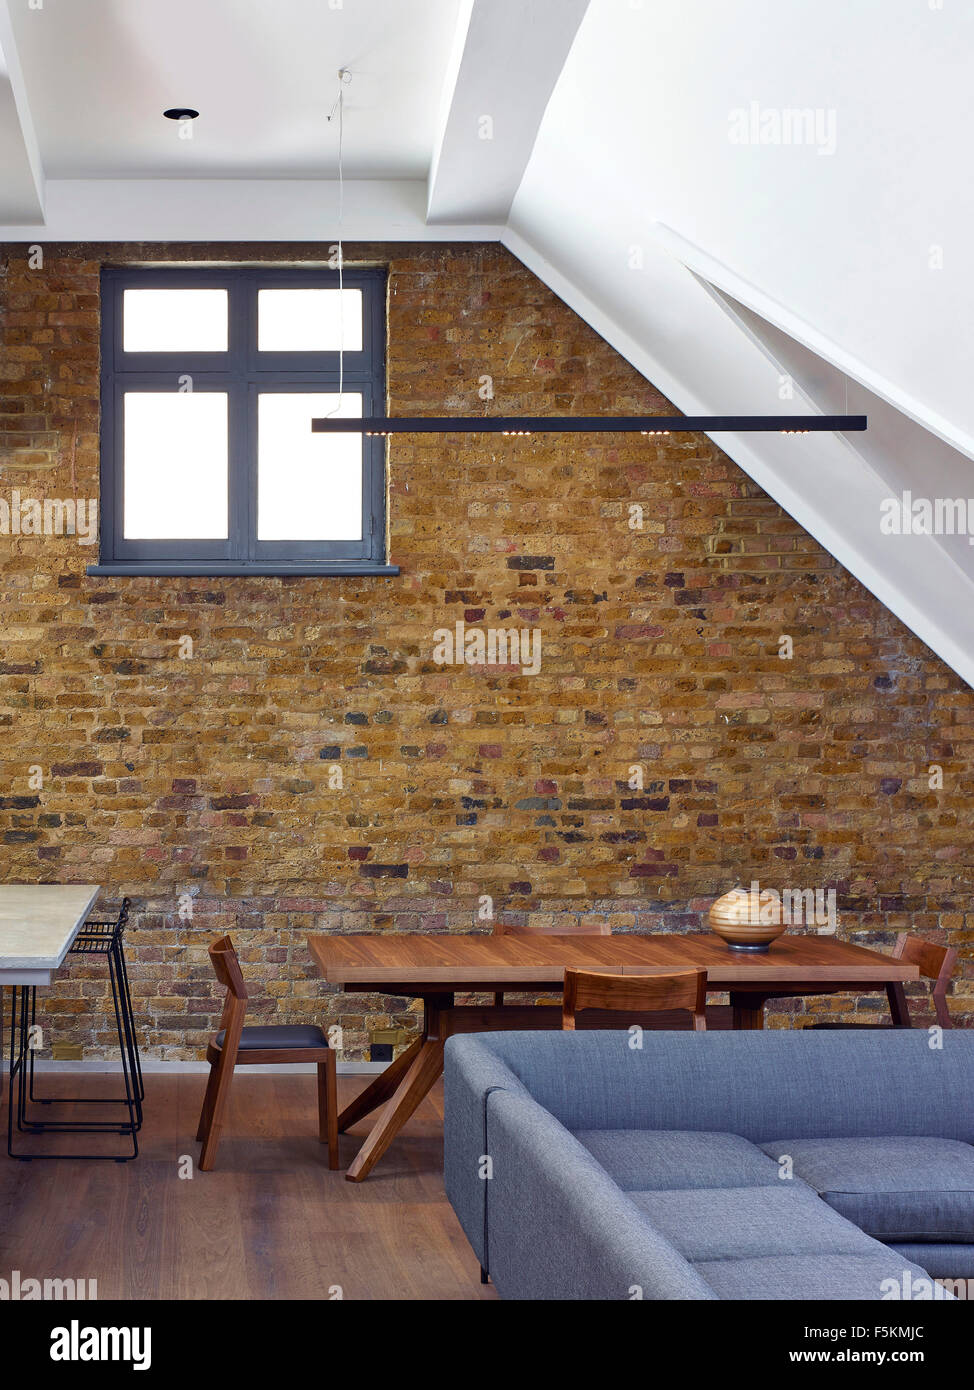 exposed brick wall in living area mandeville apartment london united kingdom architect neil davies architects 2015